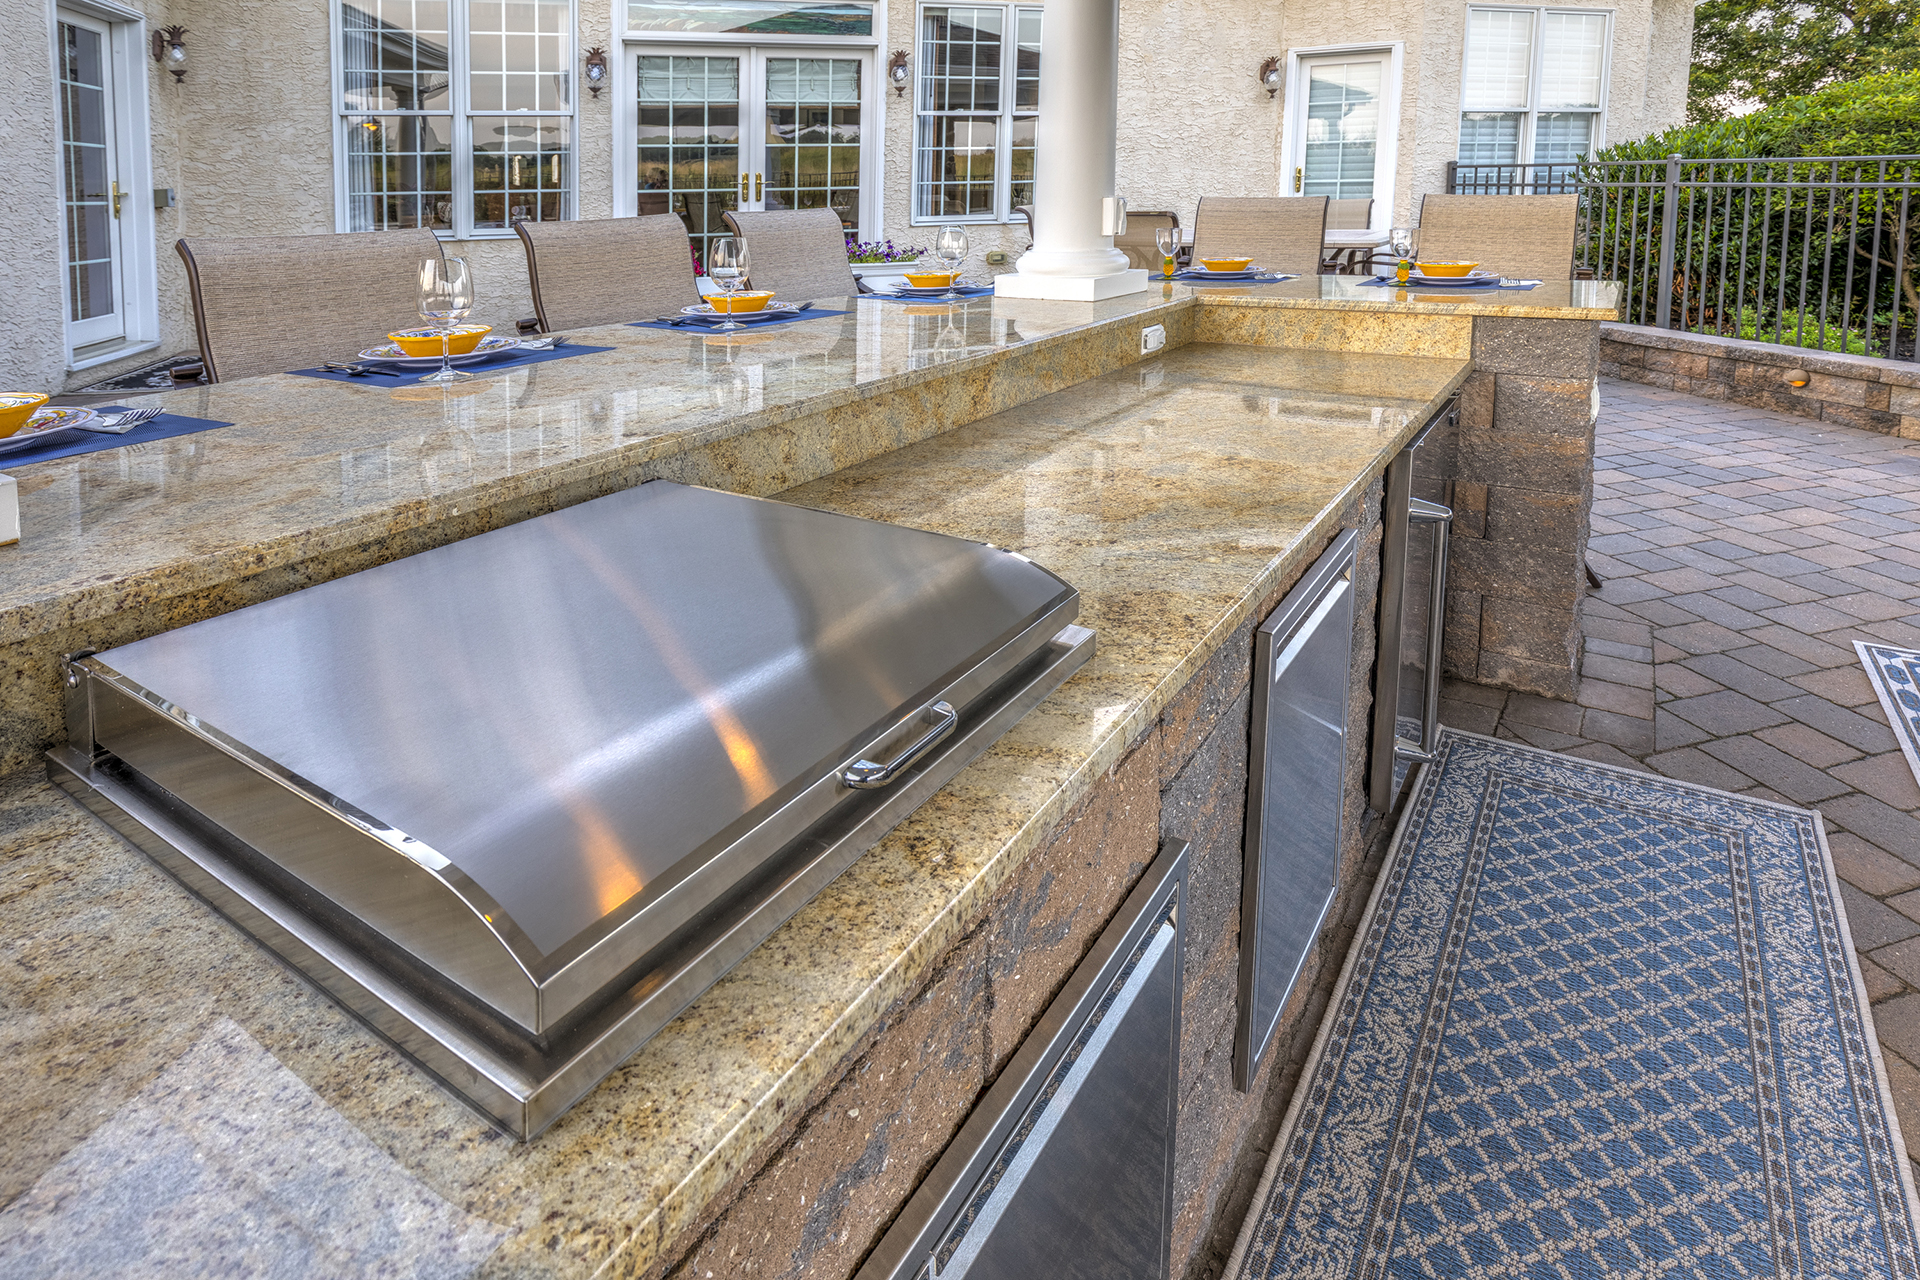 Piccinotti After-13_Oxford, PA 19363 -Outdoor Kitchen by DiSabatino Landscaping & Esposito Masonry